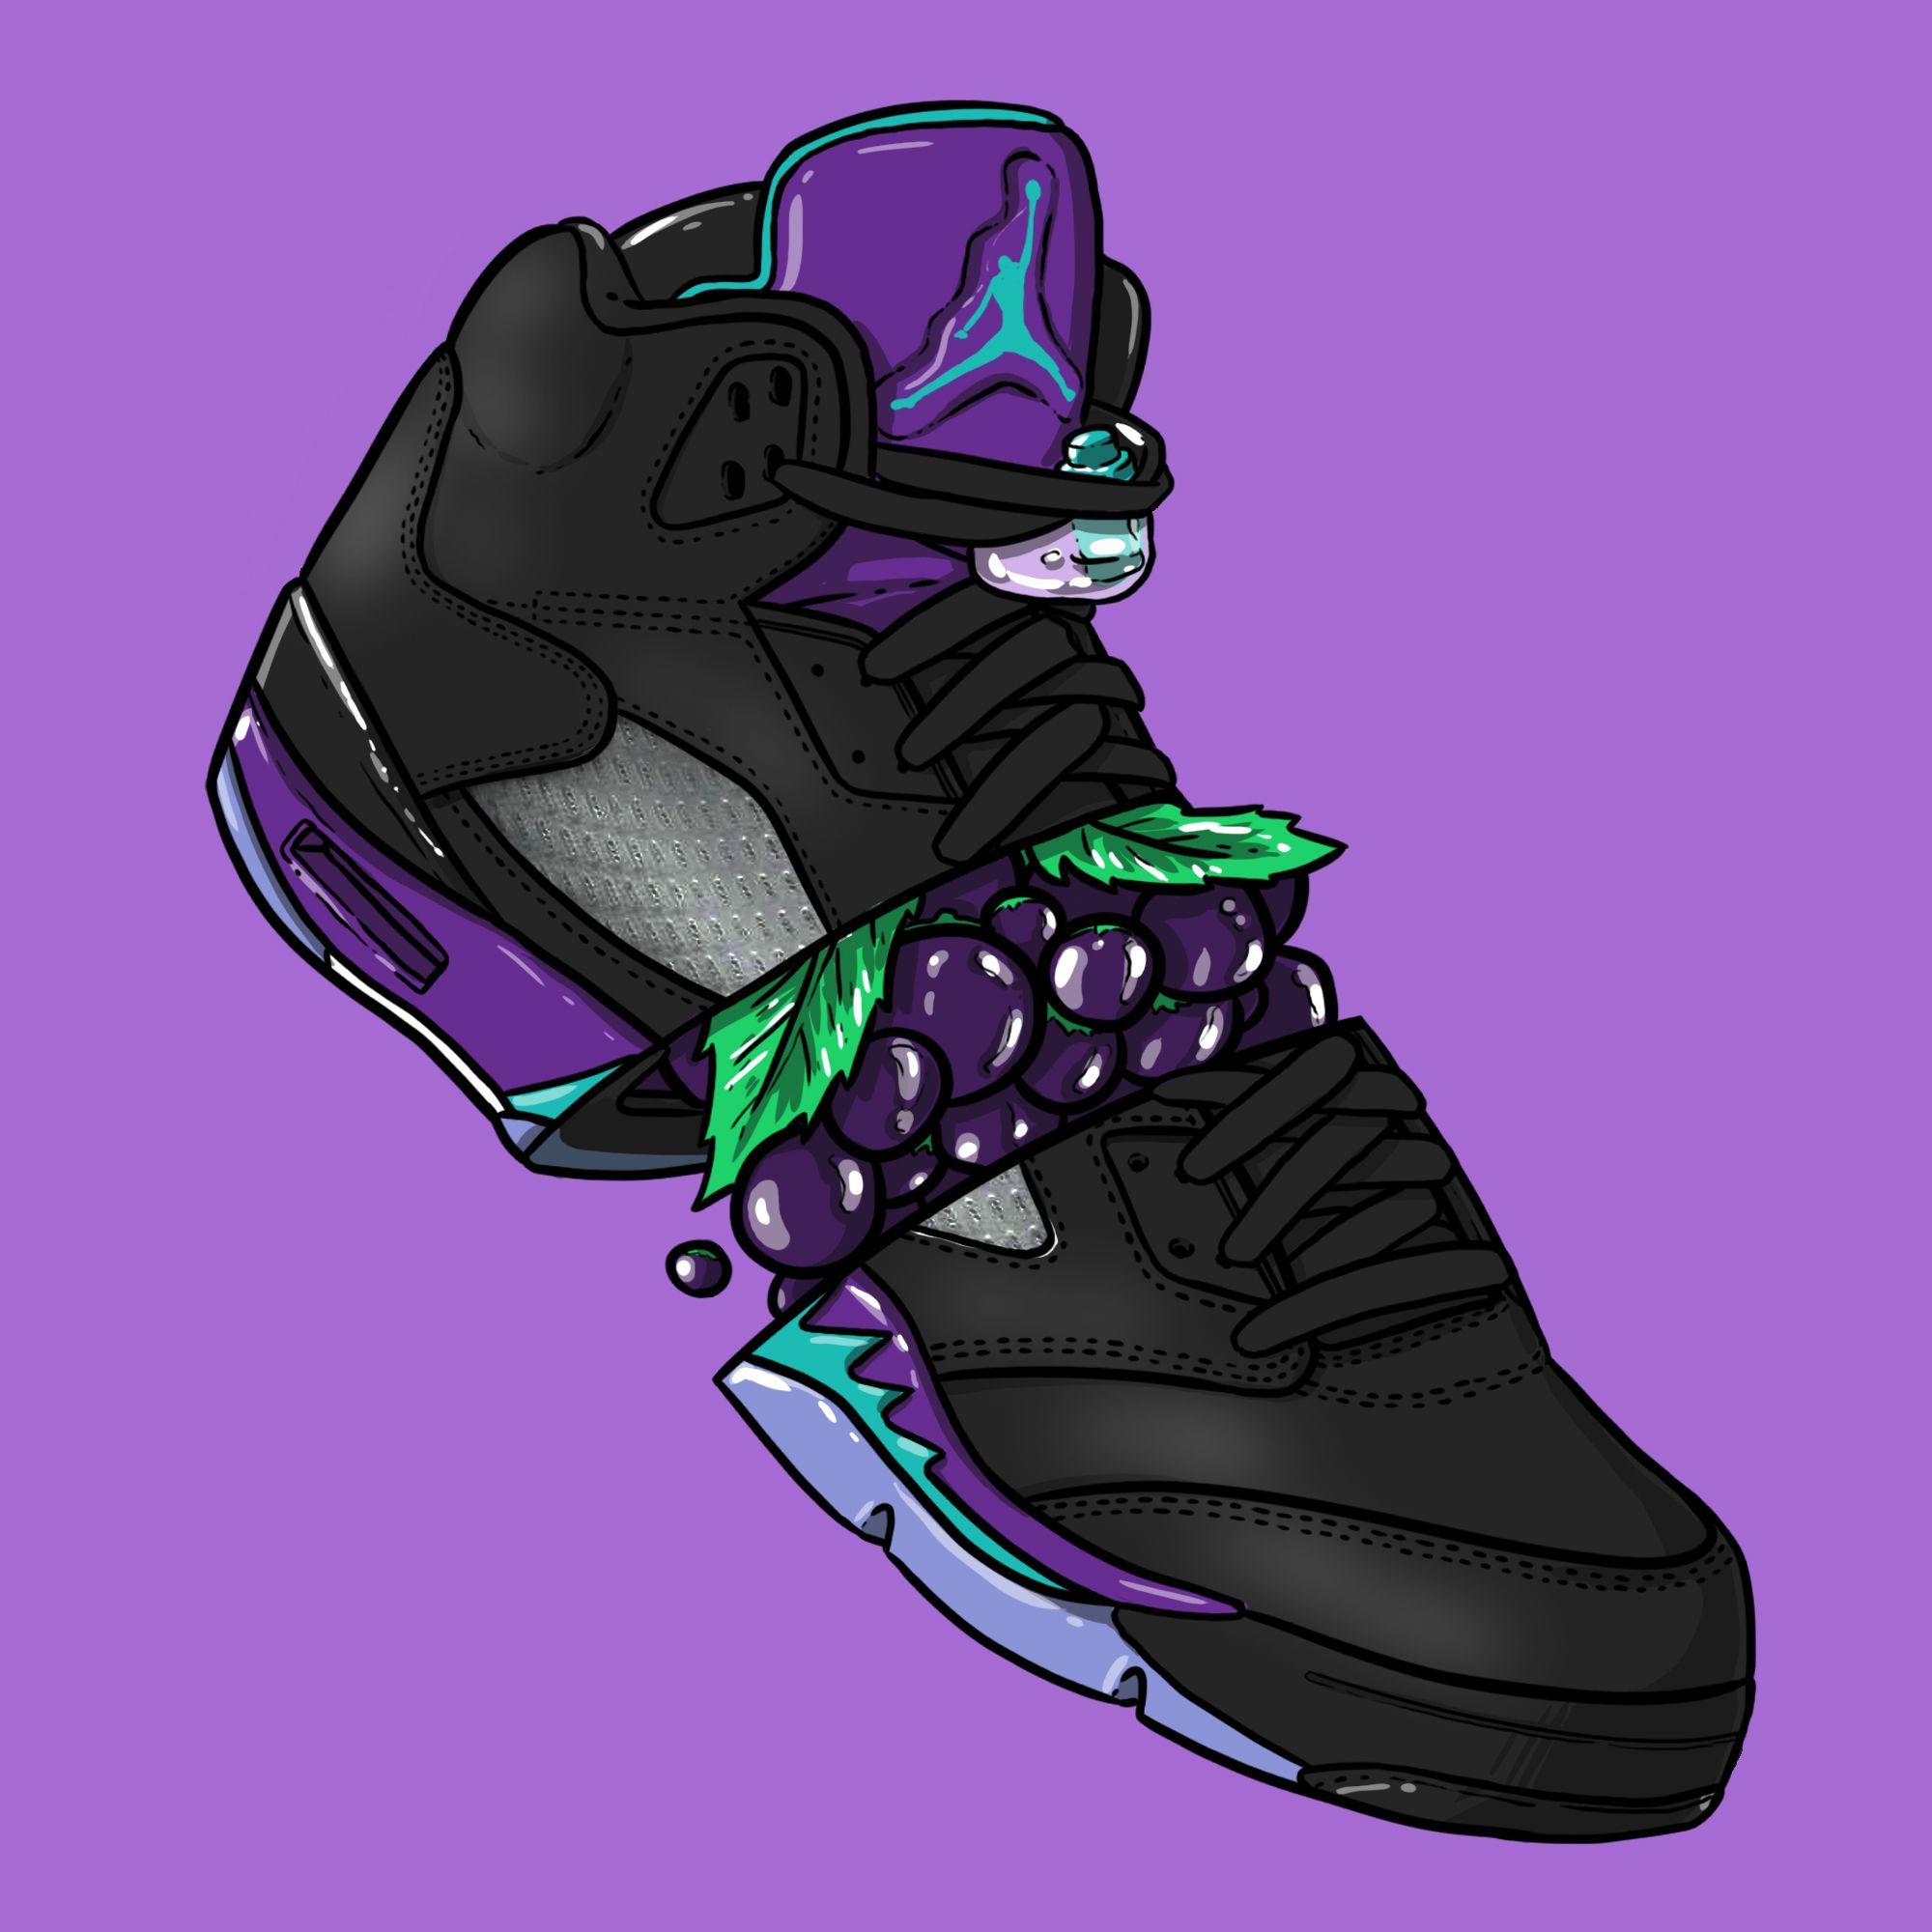 jordan and nike shoes drawing cartoon eyes looking 925772